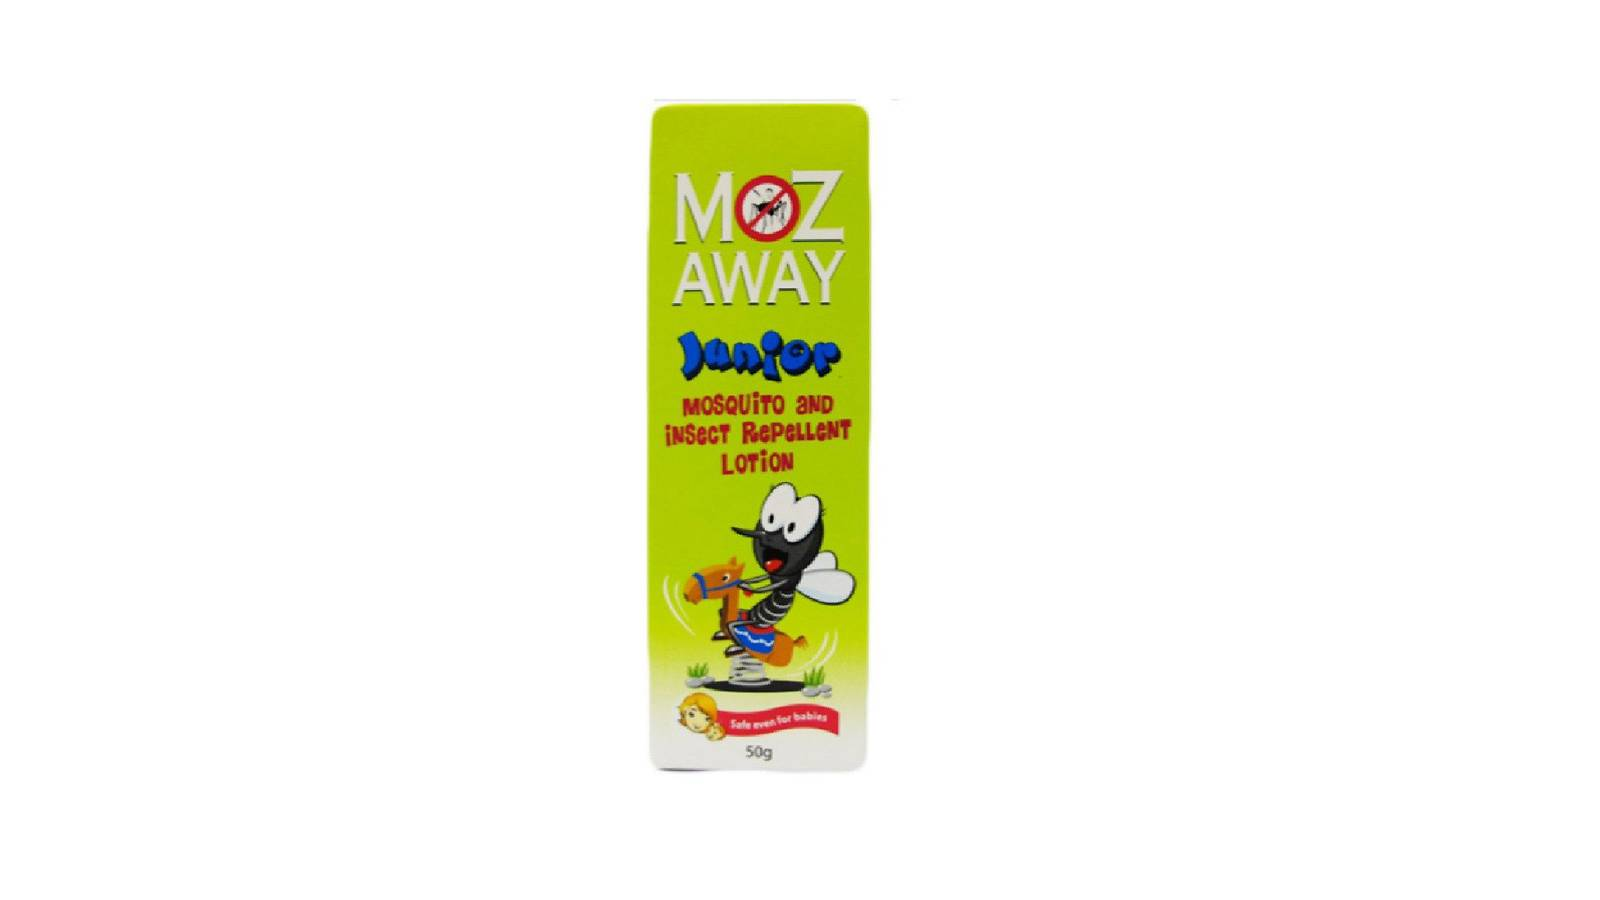 Parents-Banish-mosquitos-with-these-mos-away-lotion